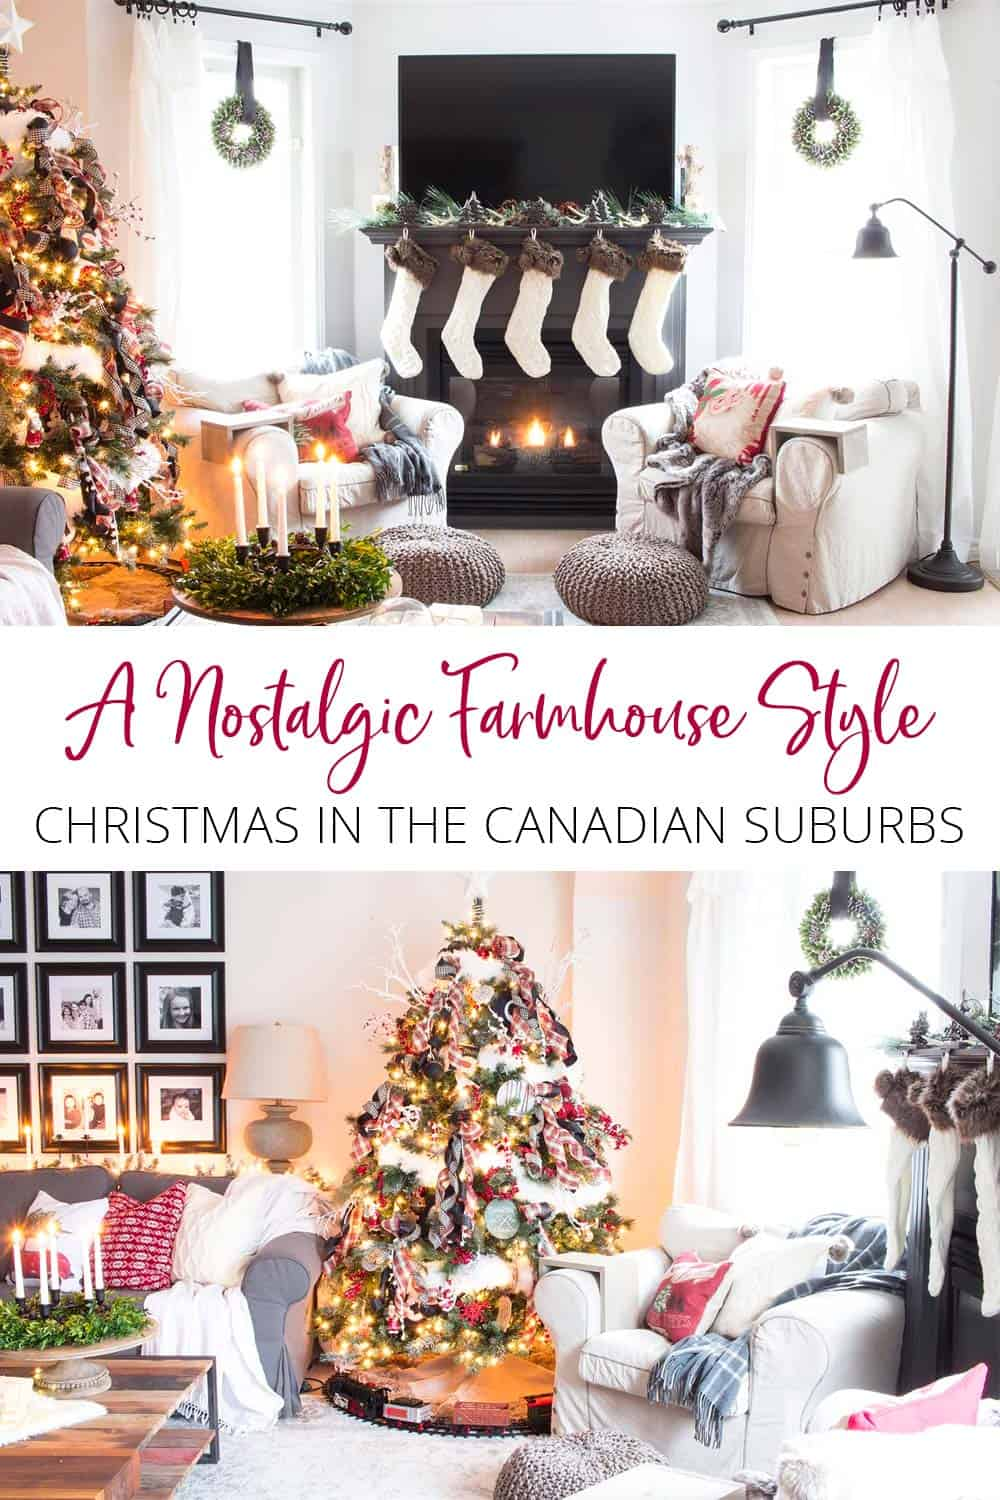 A nostalgic farmhouse style Christmas in the Canadian suburbs.